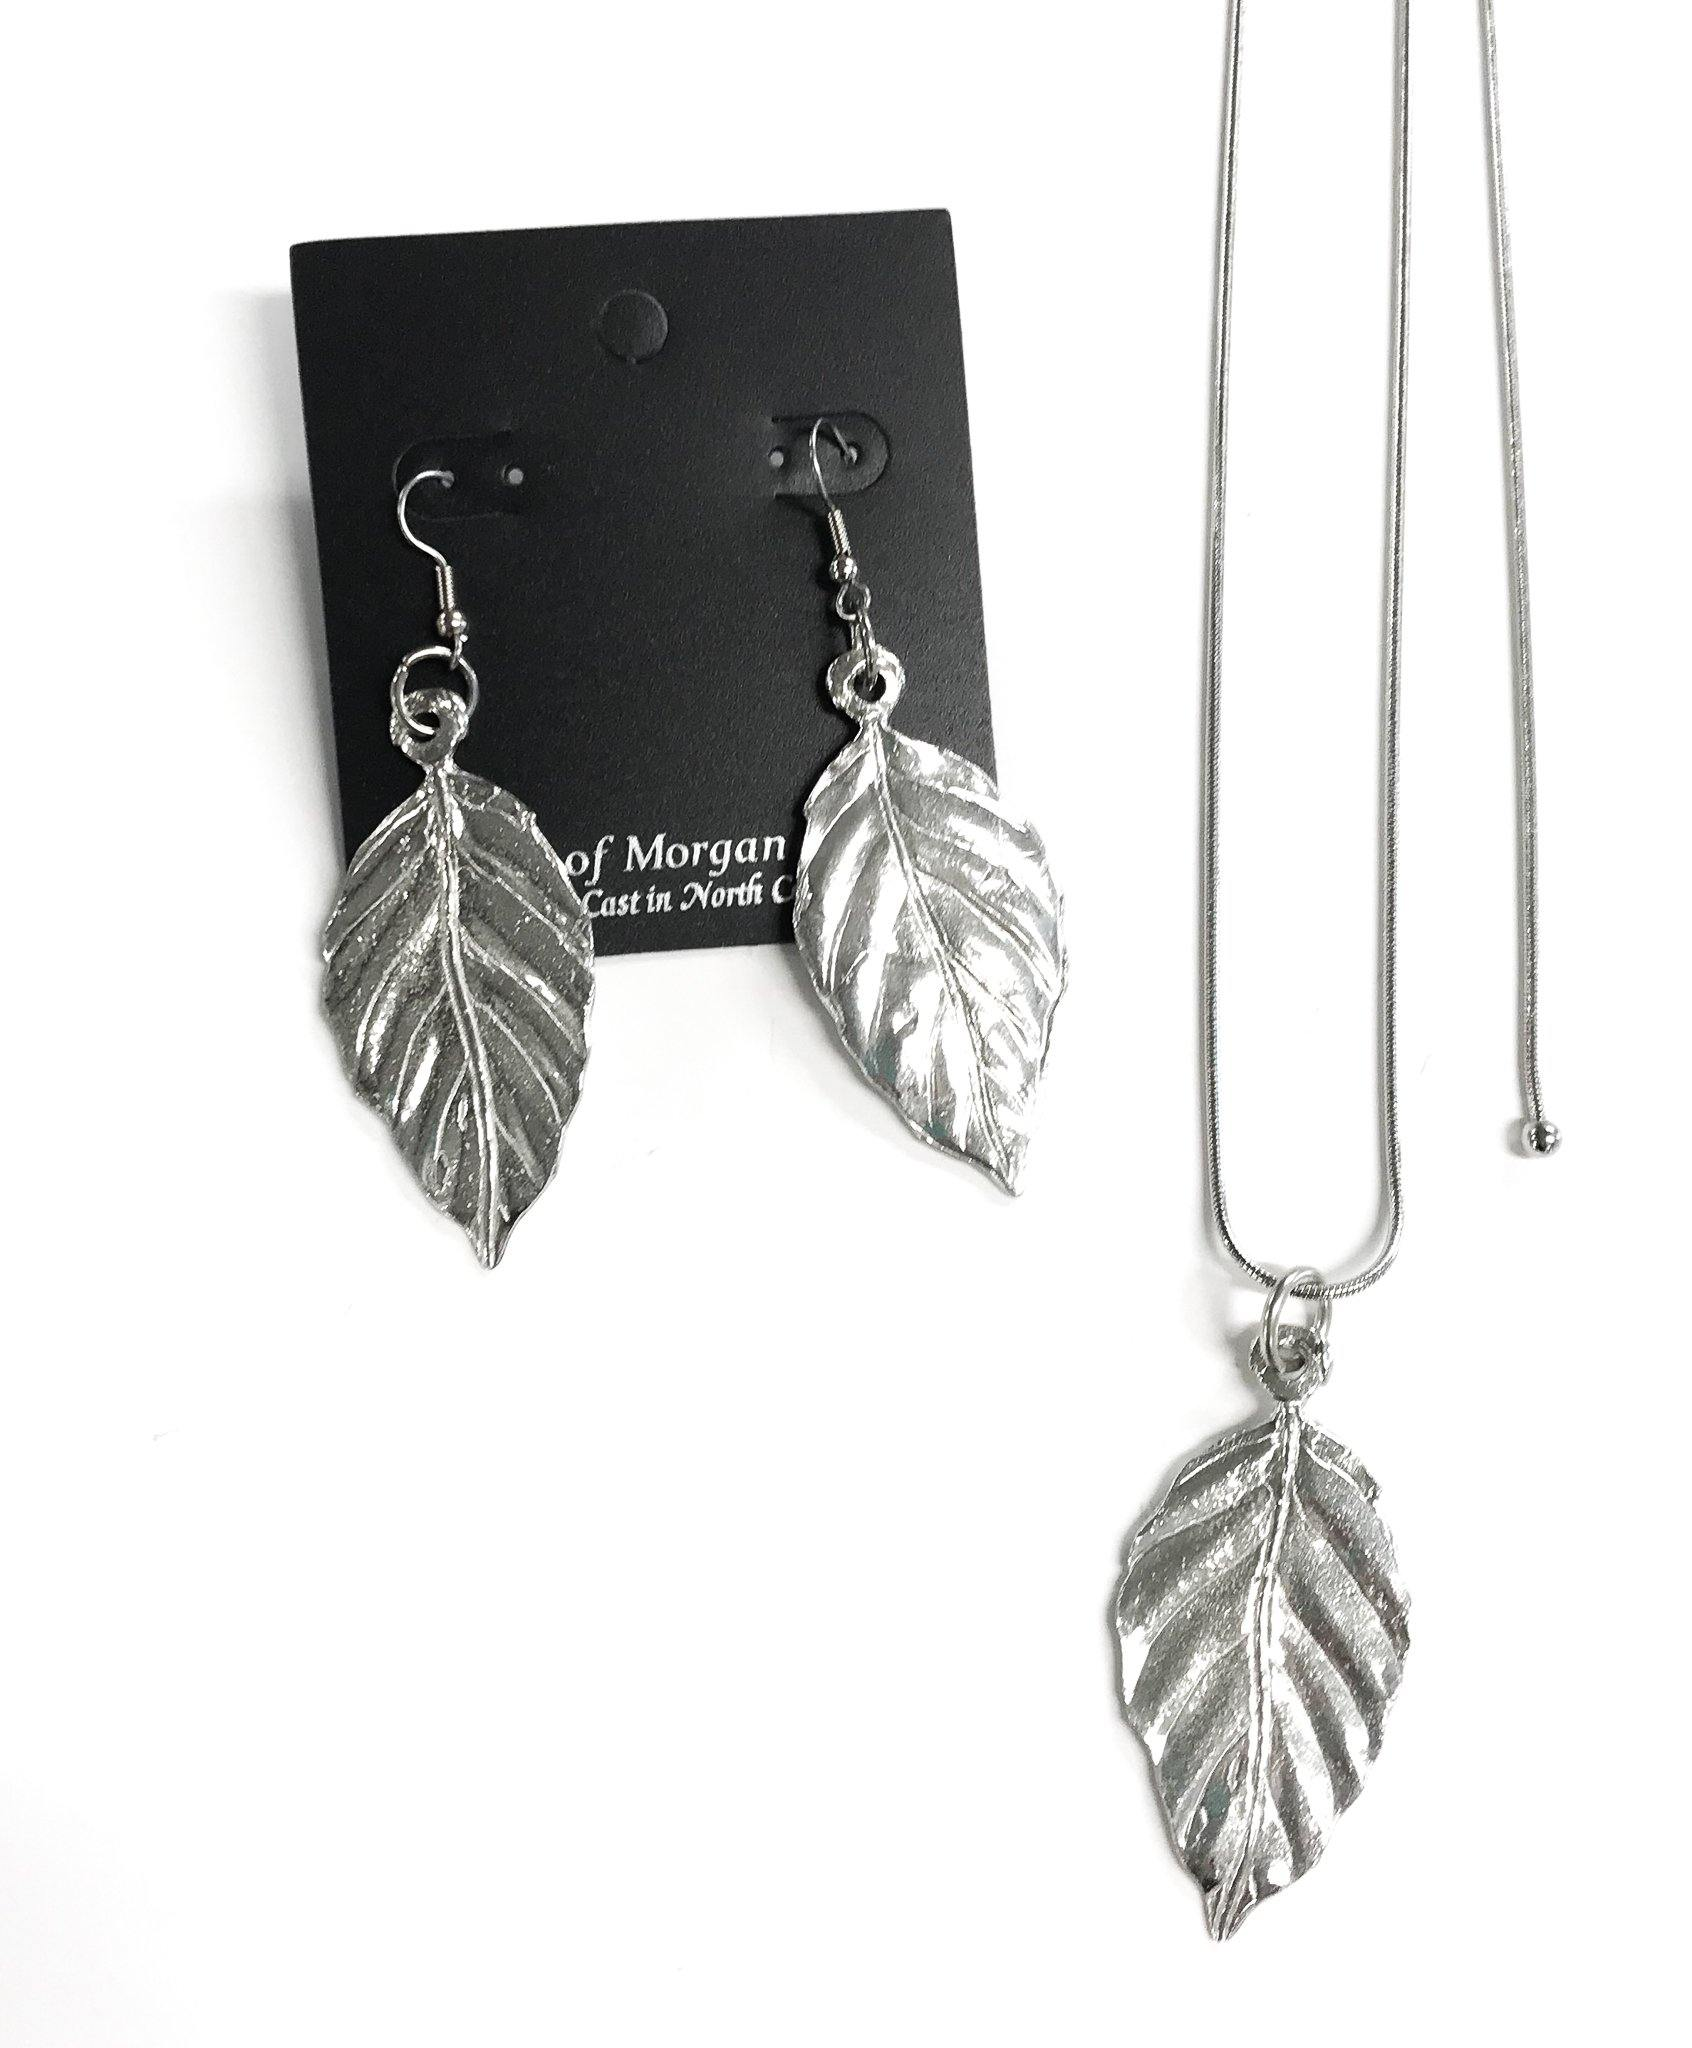 North Carolina handmade tobacco leaf jewelry